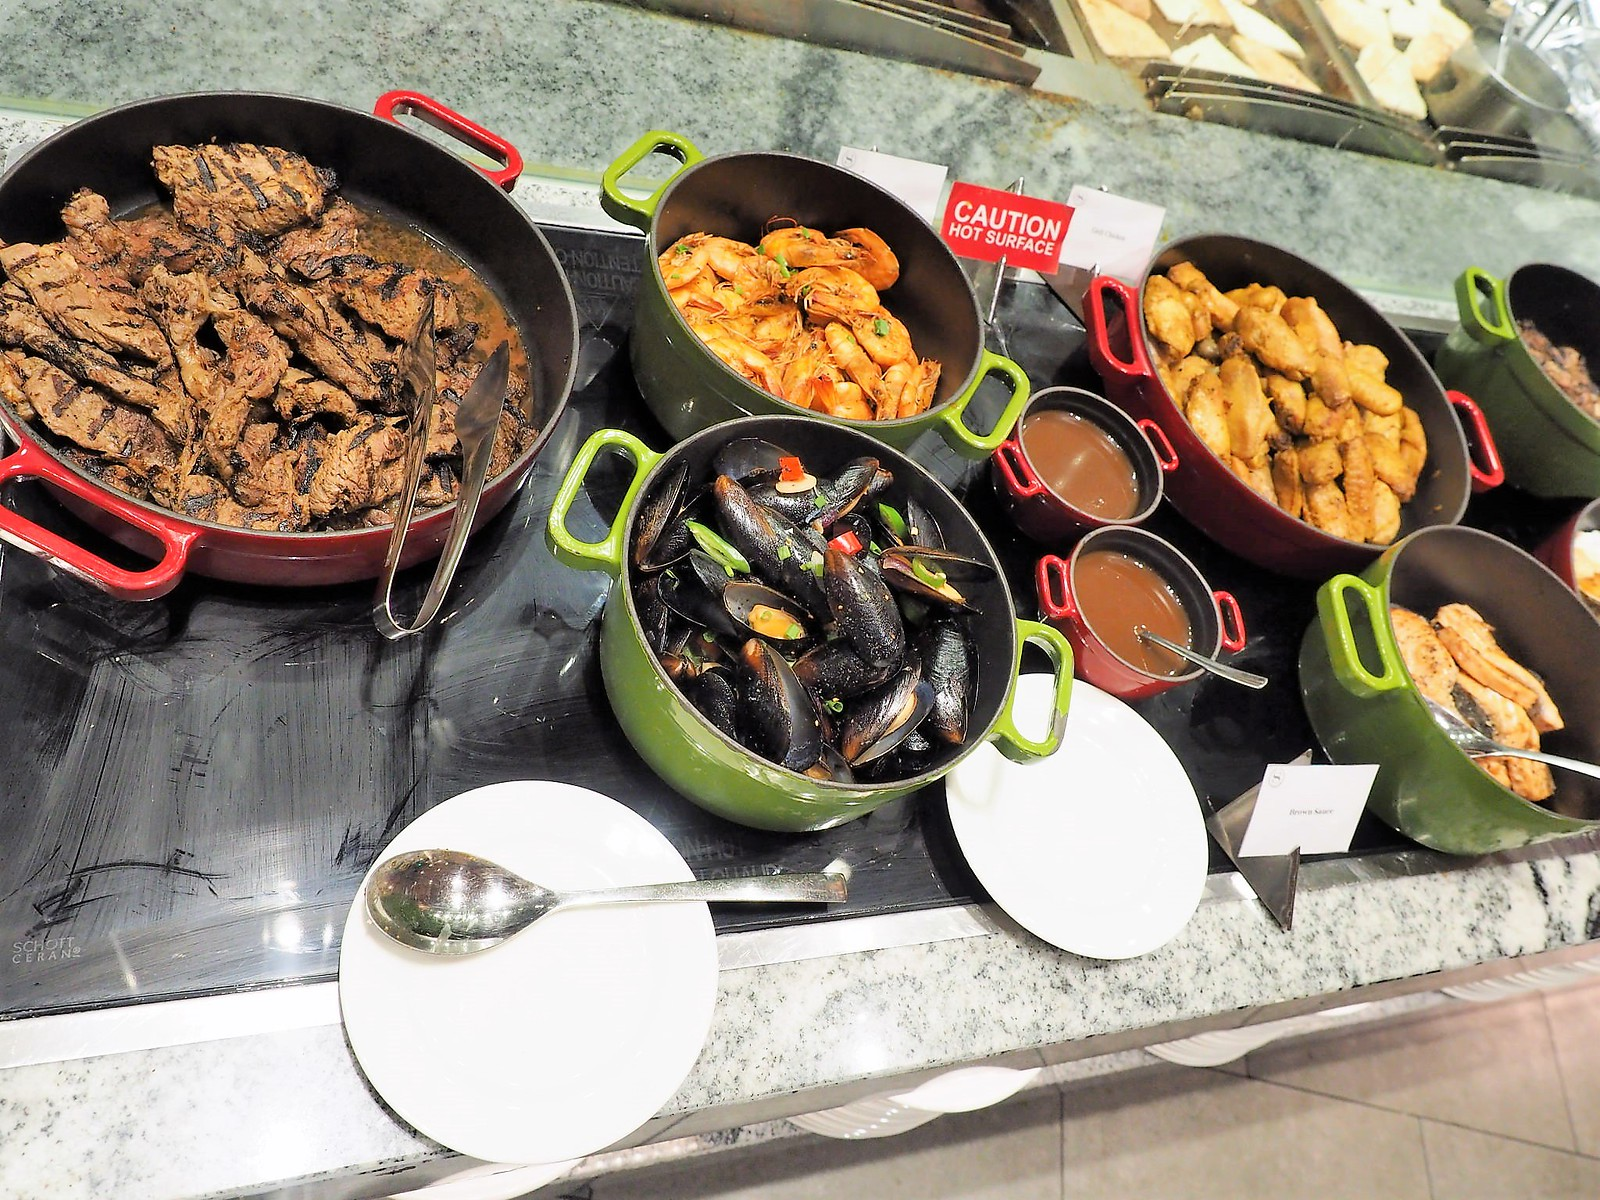 Cooked lamb, mussels, salmon and chicken